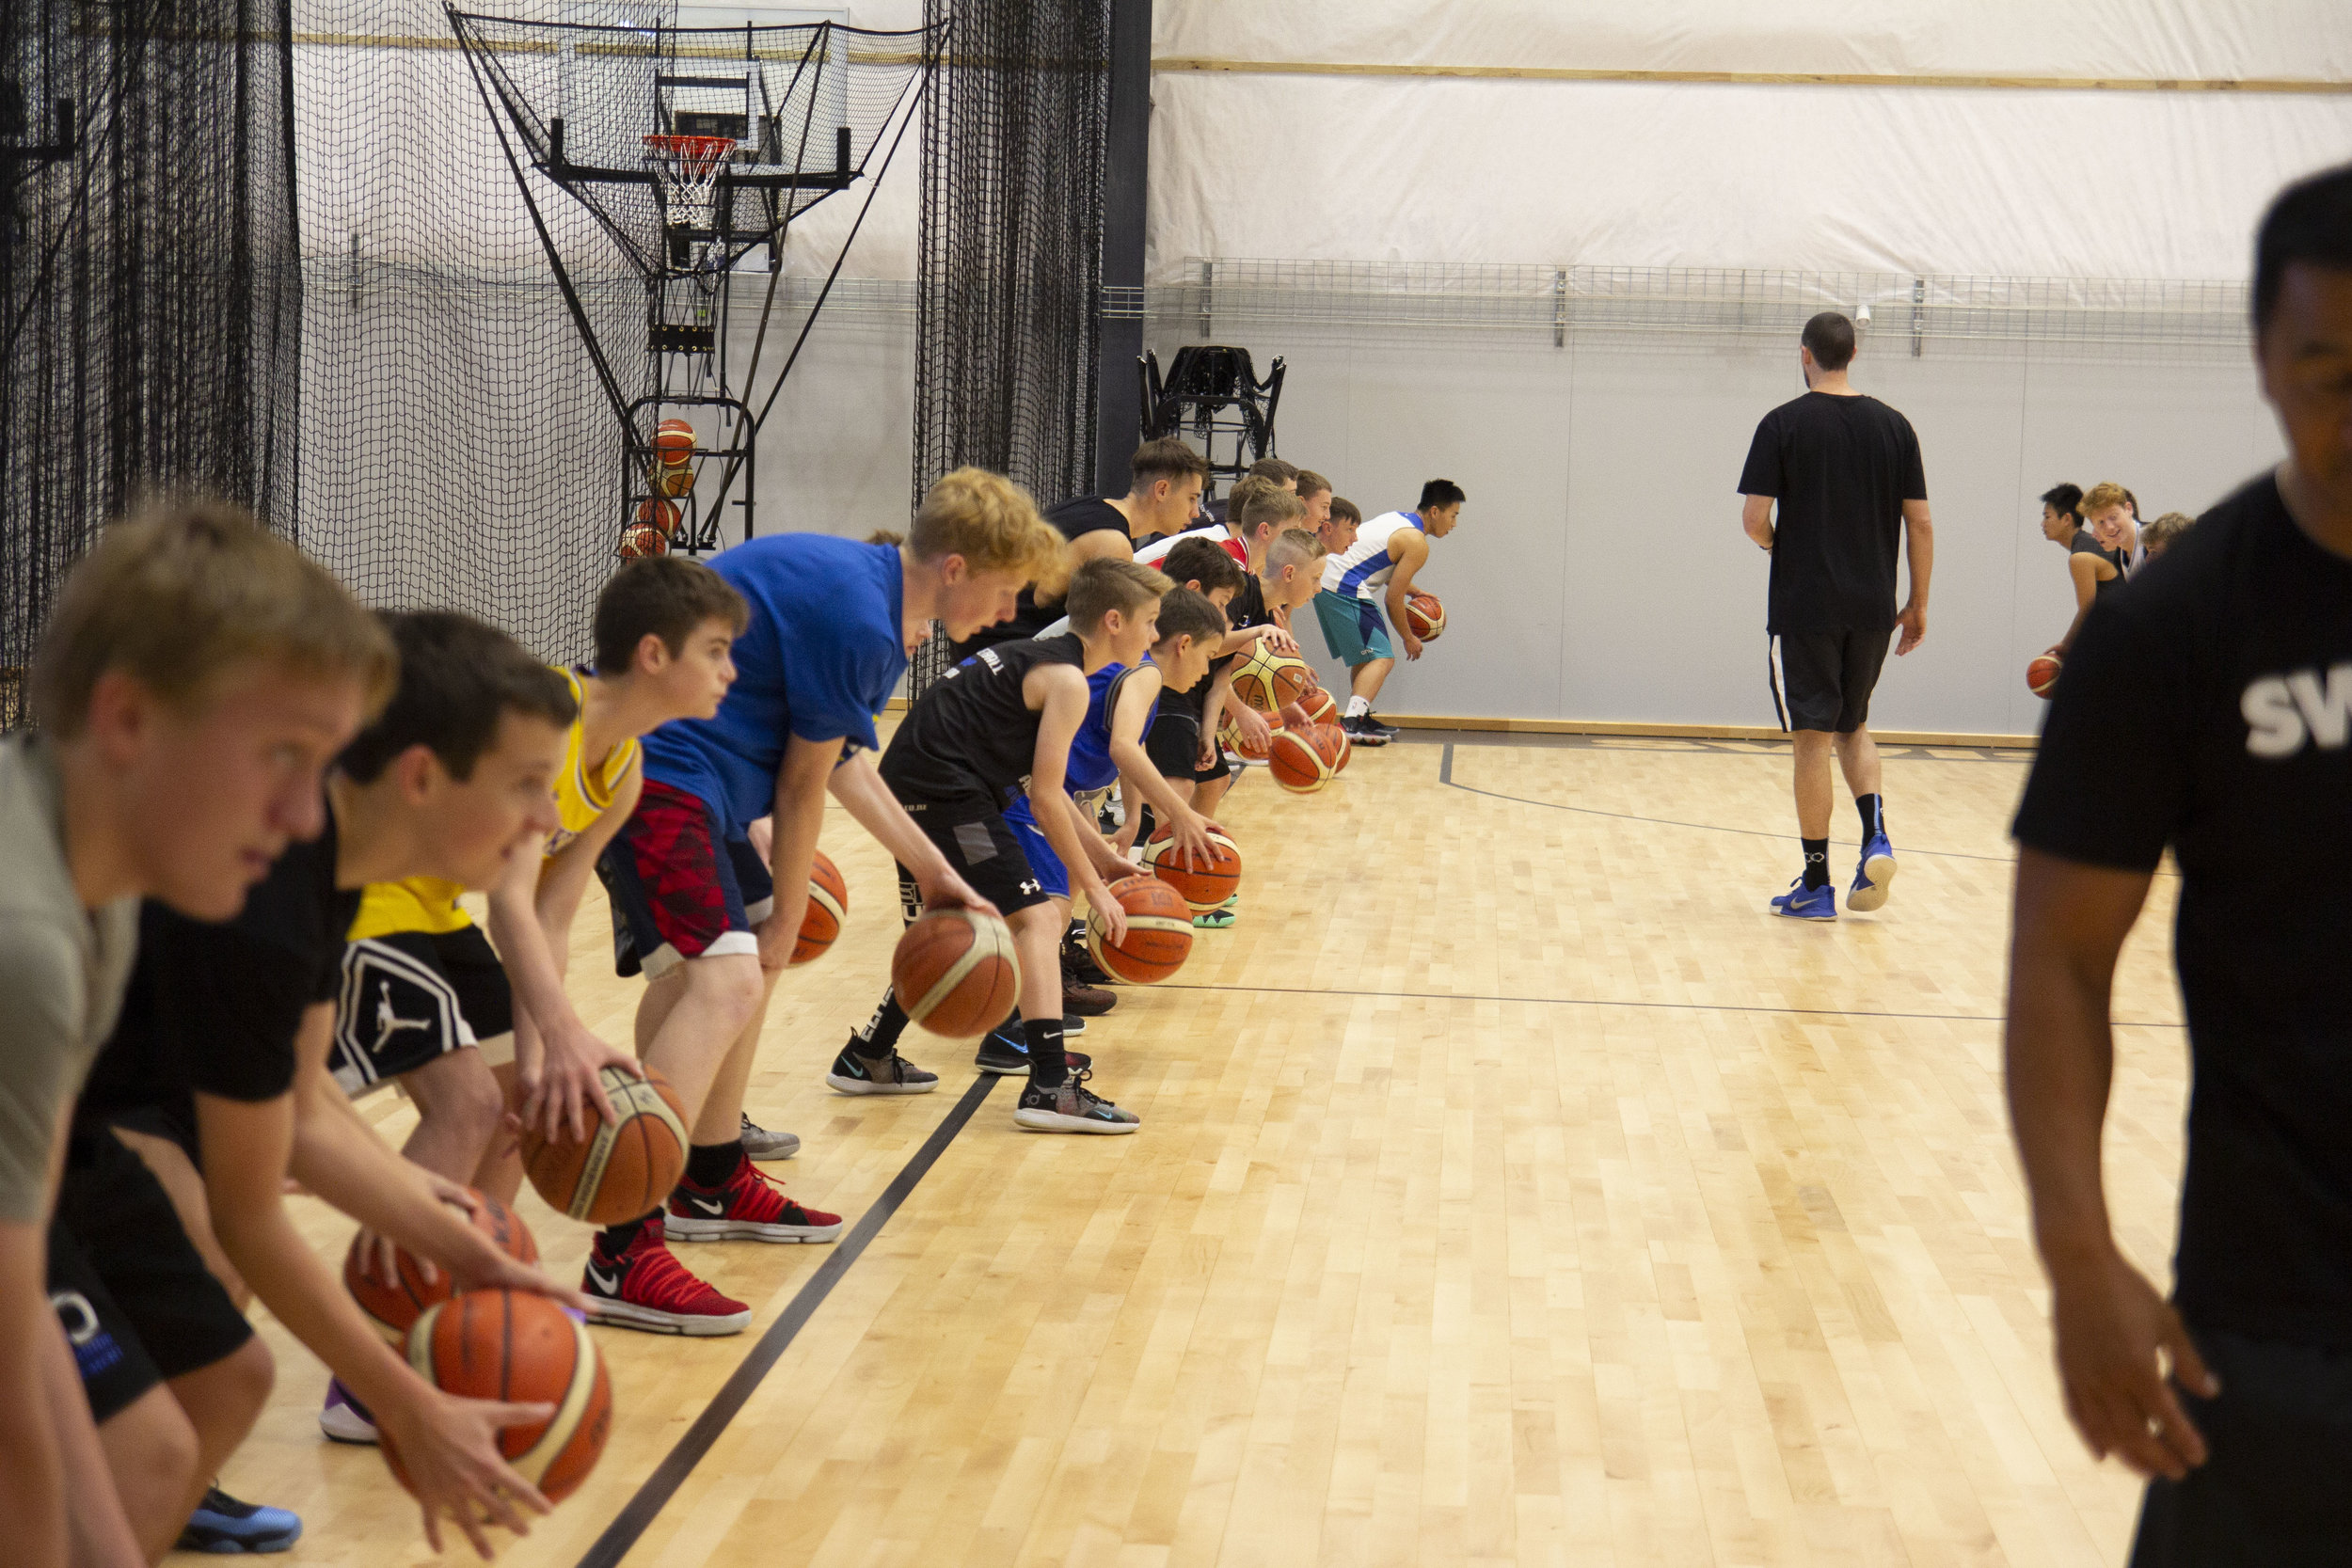 Group Class Schedule - Try one of our Group Classes - JUNIOR SHOOT, JUNIOR HANDLES. to improve your skills and have fun while doing it. 4pm Mon-Thursday and Saturday 9am.